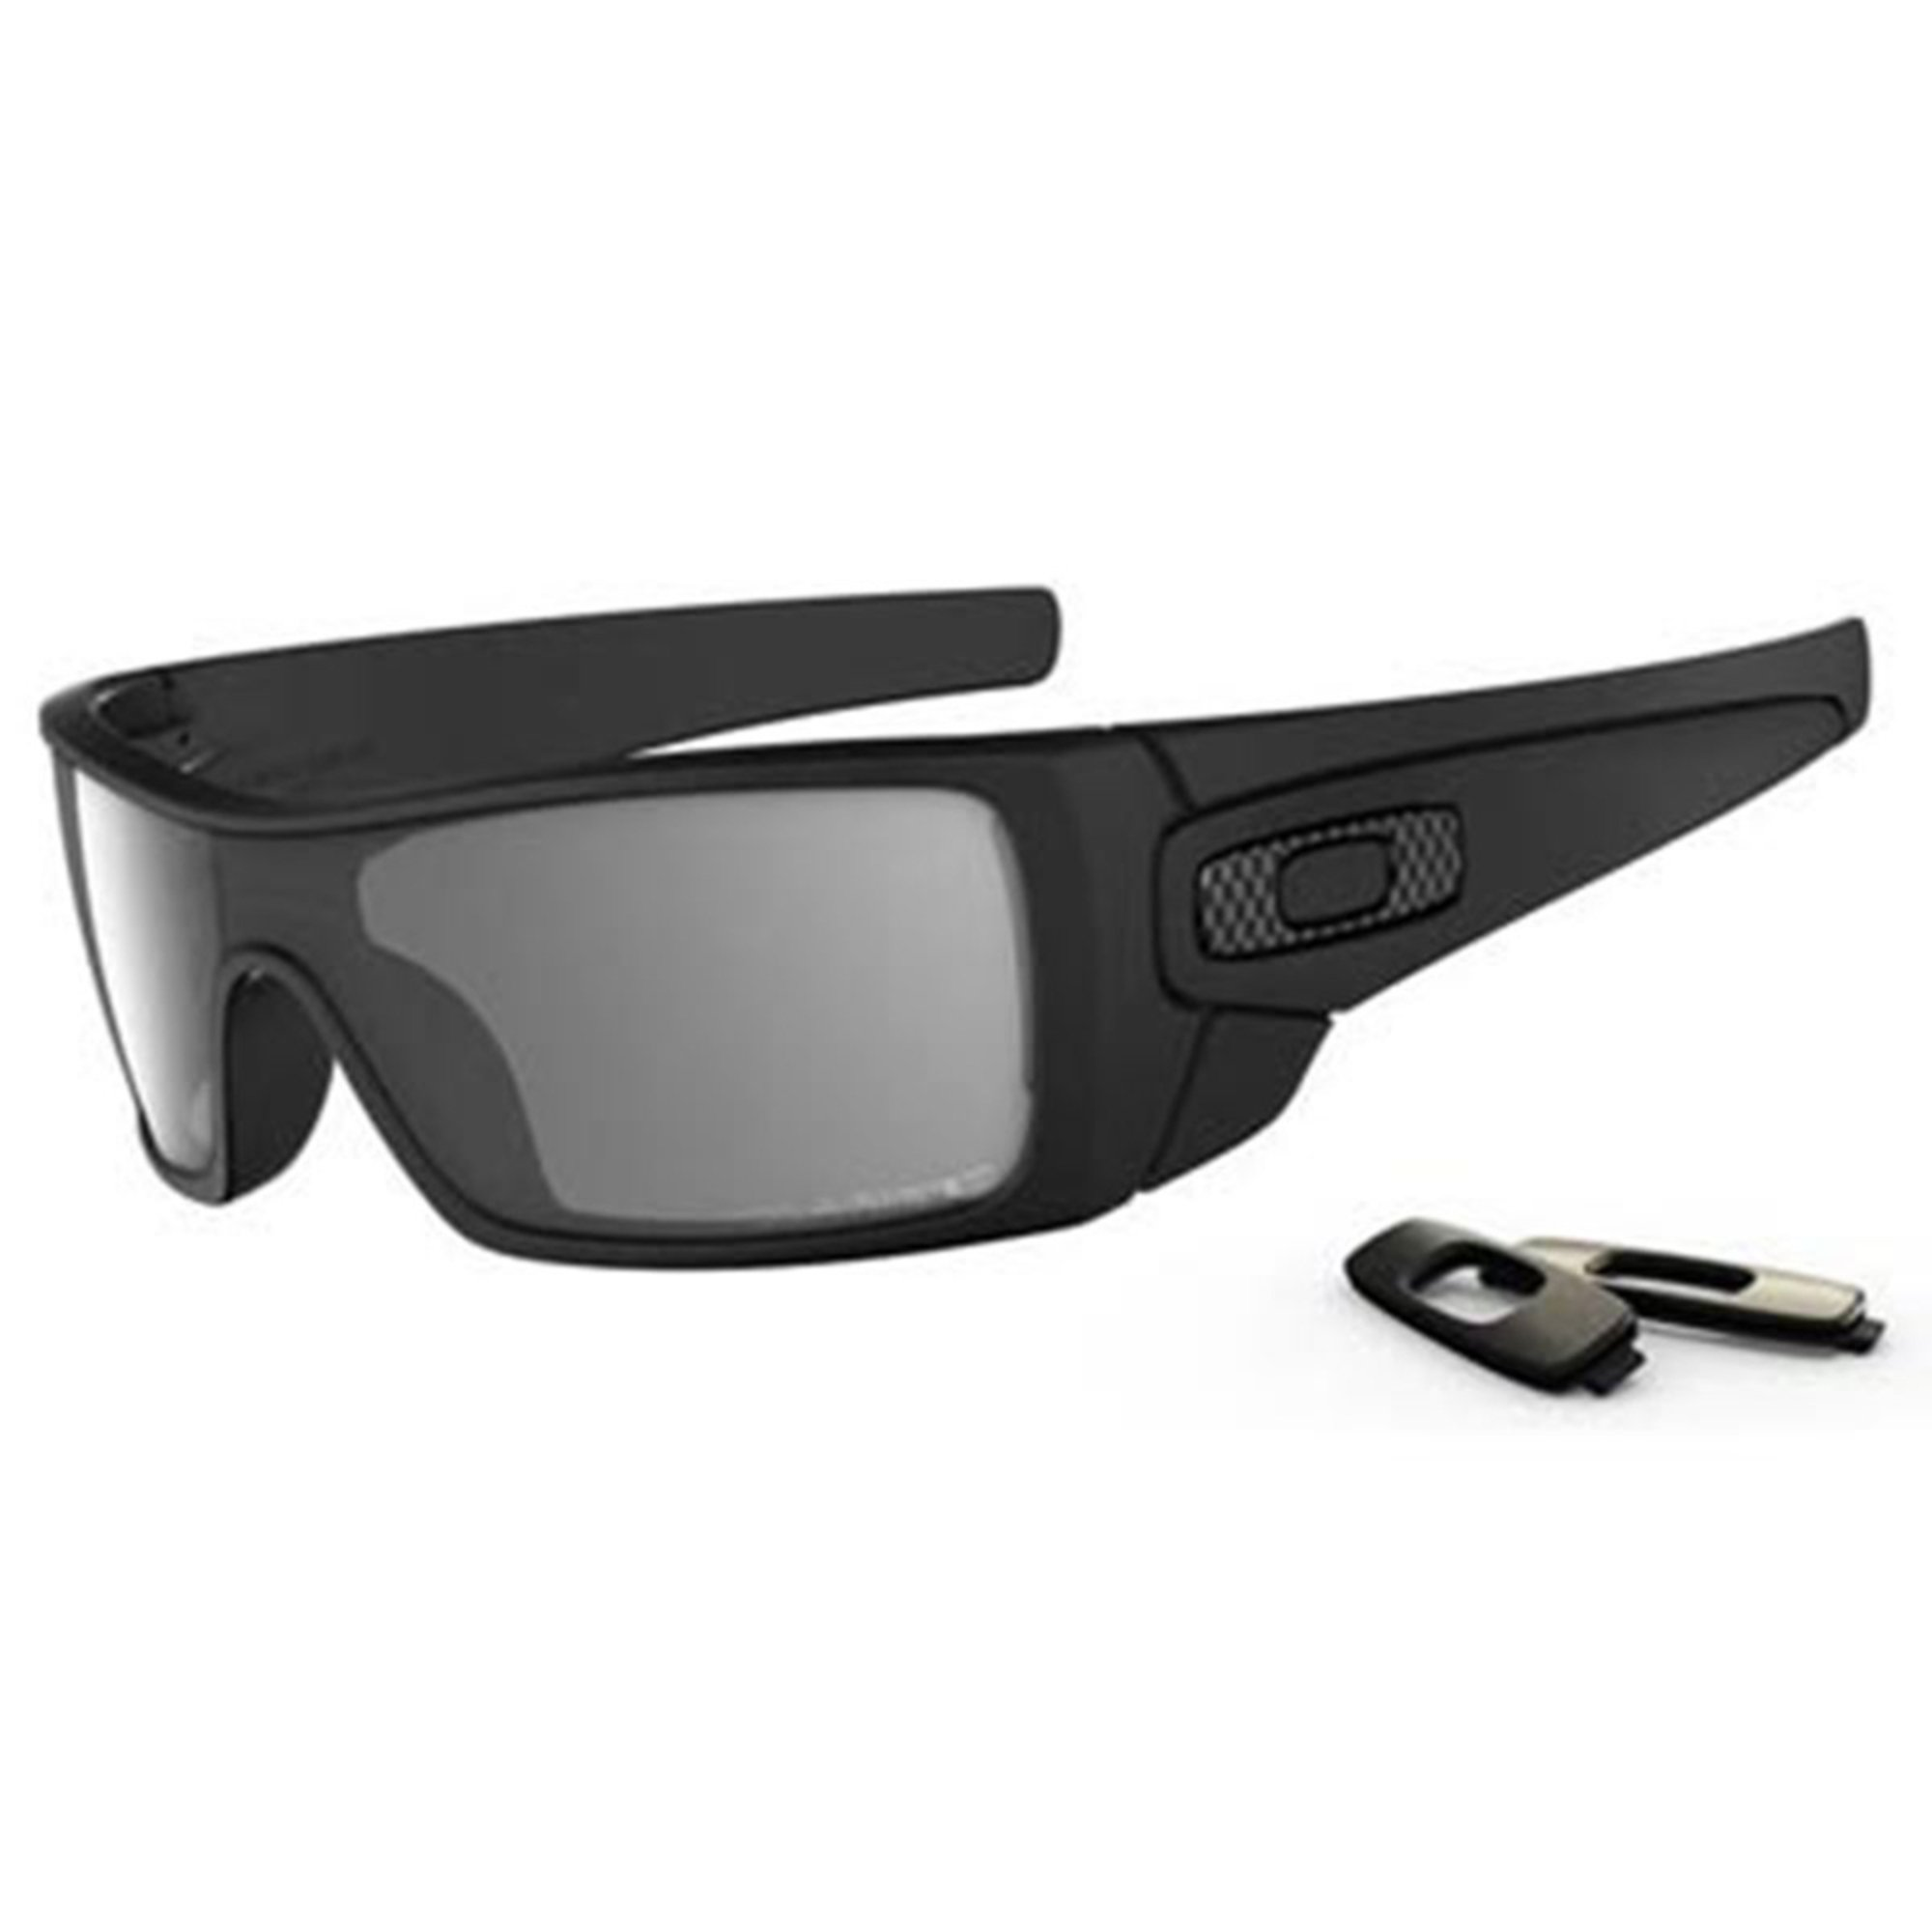 0214dc9ced Oakley. Oakley Men s Polarized Batwolf Sunglasses